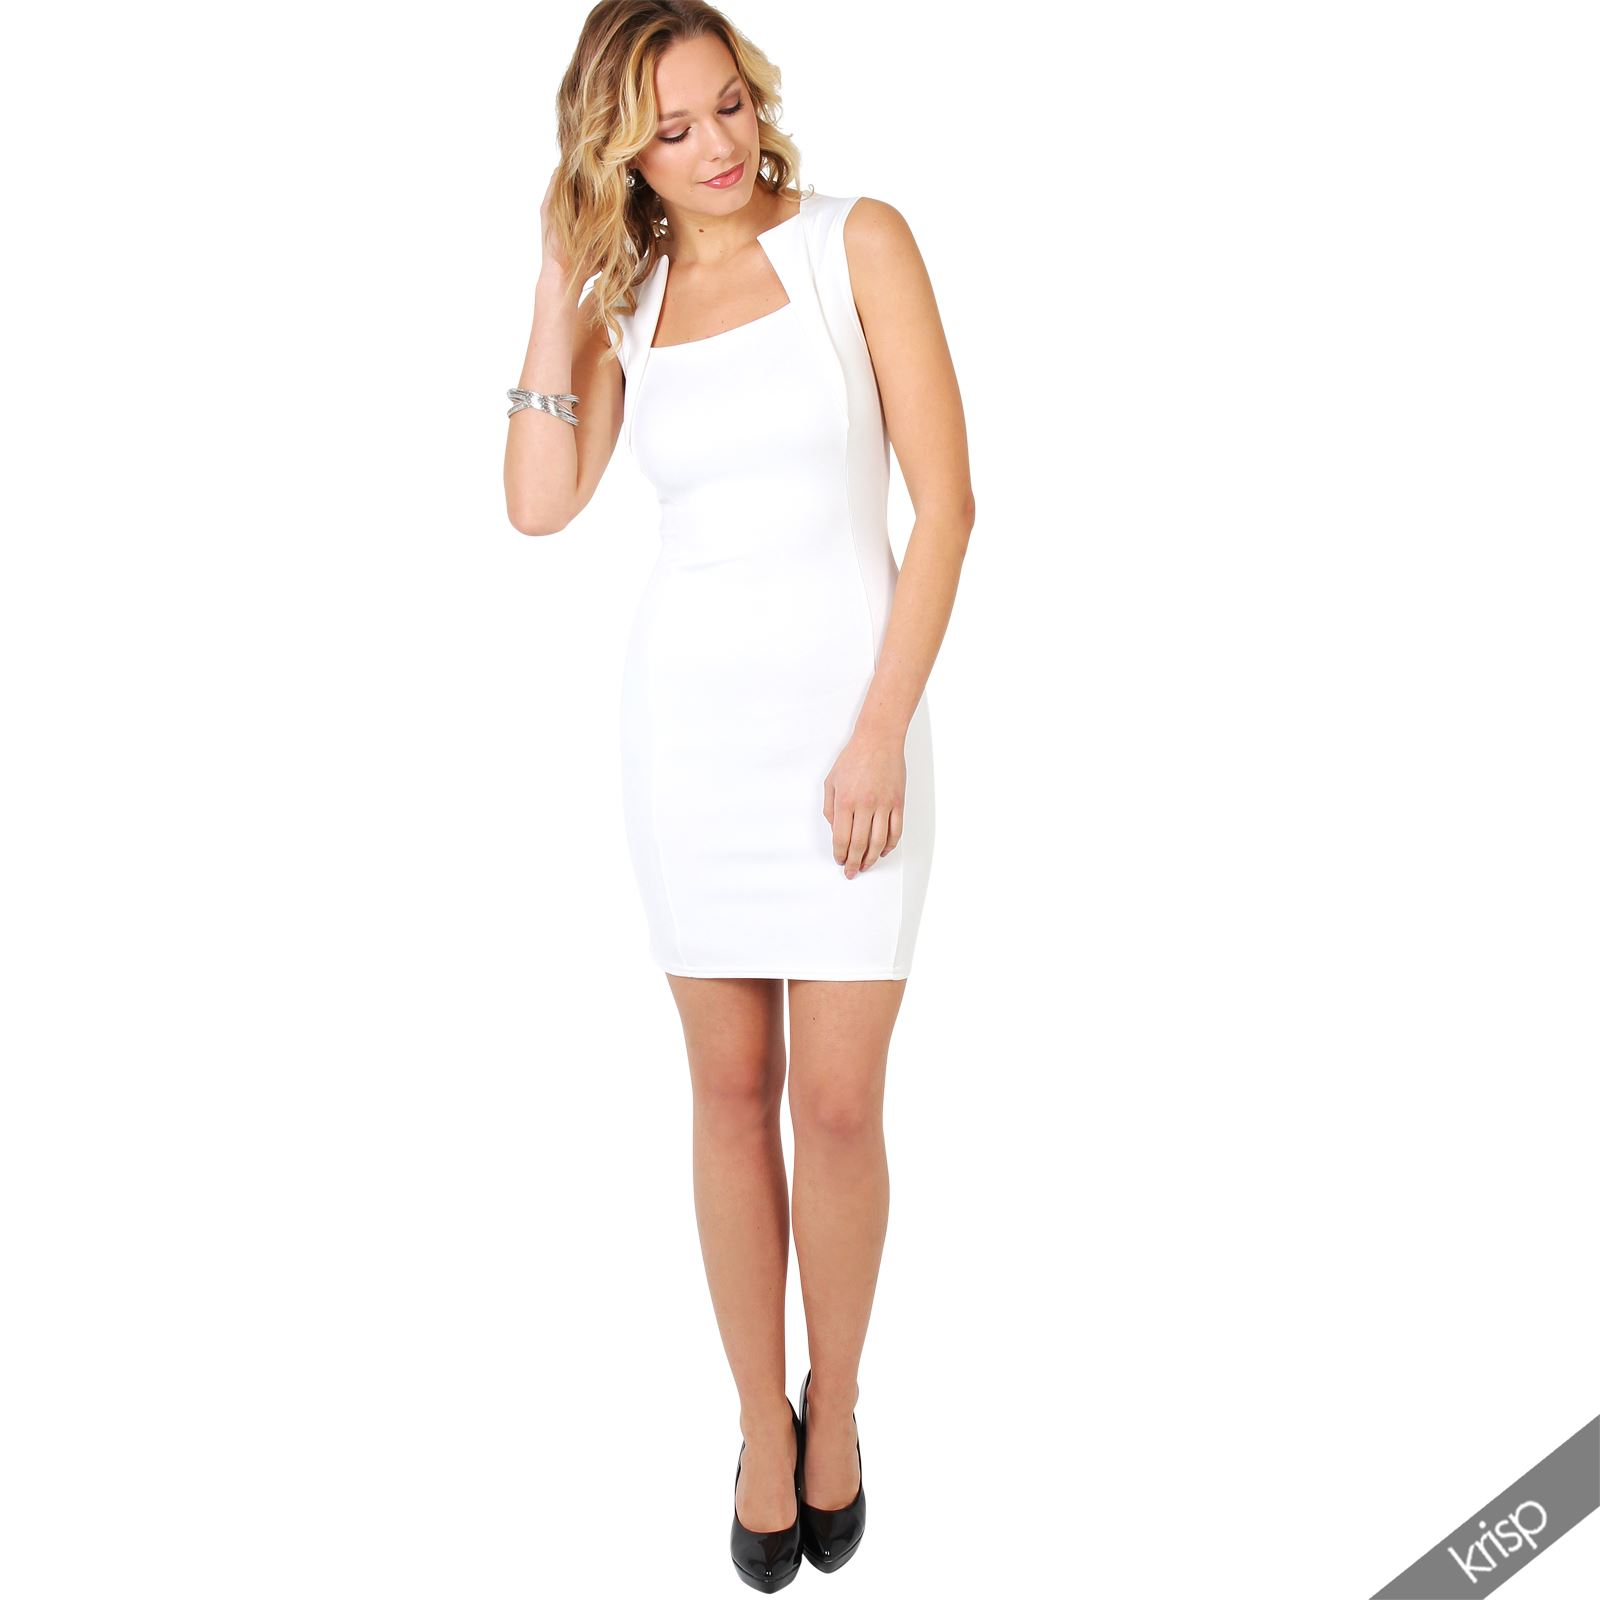 Ladies-Fashion-Bodycon-Dress-Sleeveless-Backless-Party-Fitted-Cocktail-Pencil thumbnail 6